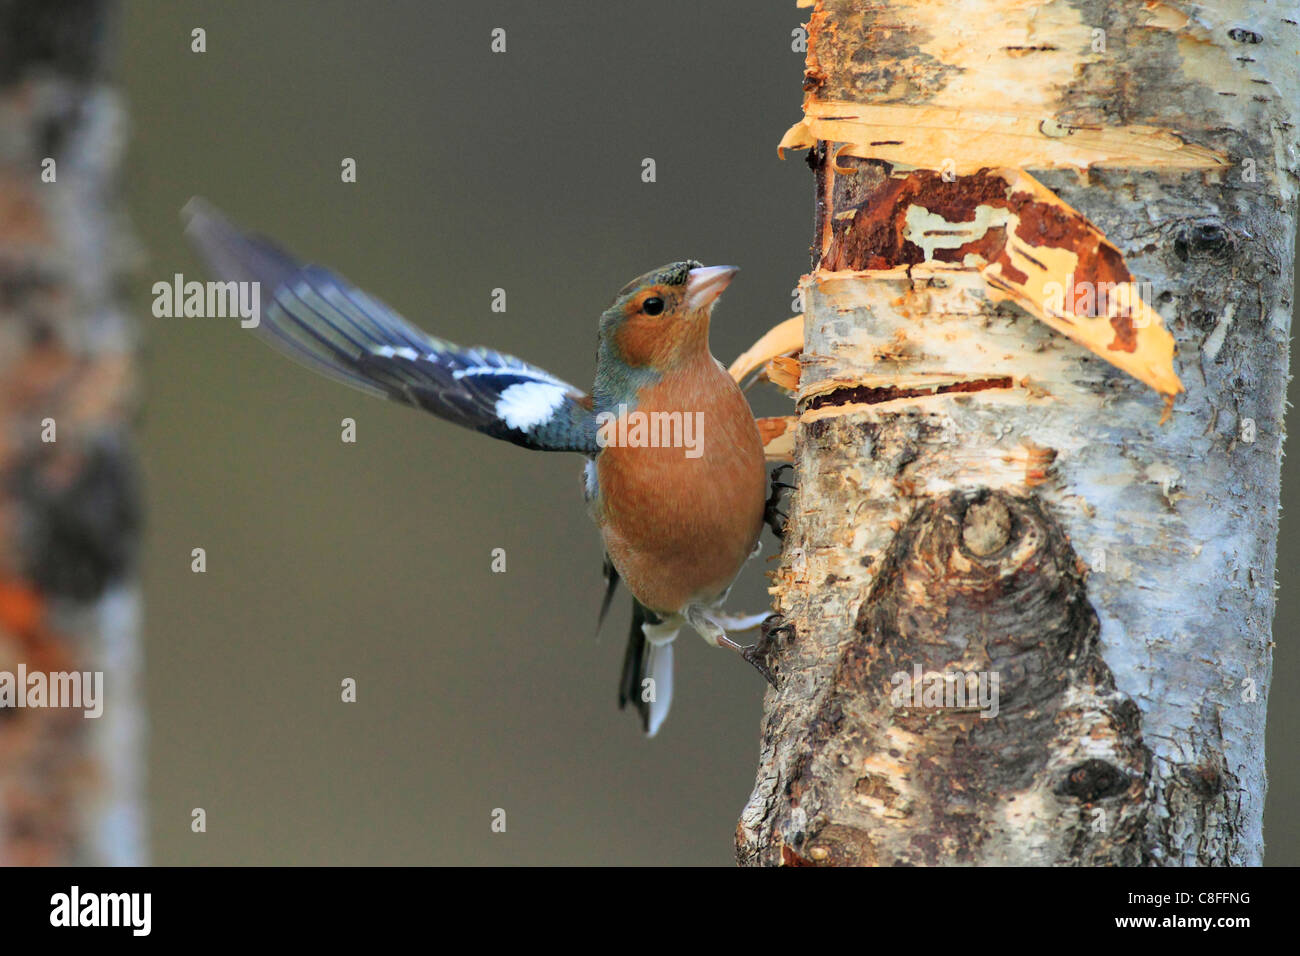 Flight, tree, movement, chaffinch, Cairngorms, food, eating, flight, wing, Fringilla coelebs, feed, feed search, - Stock Image